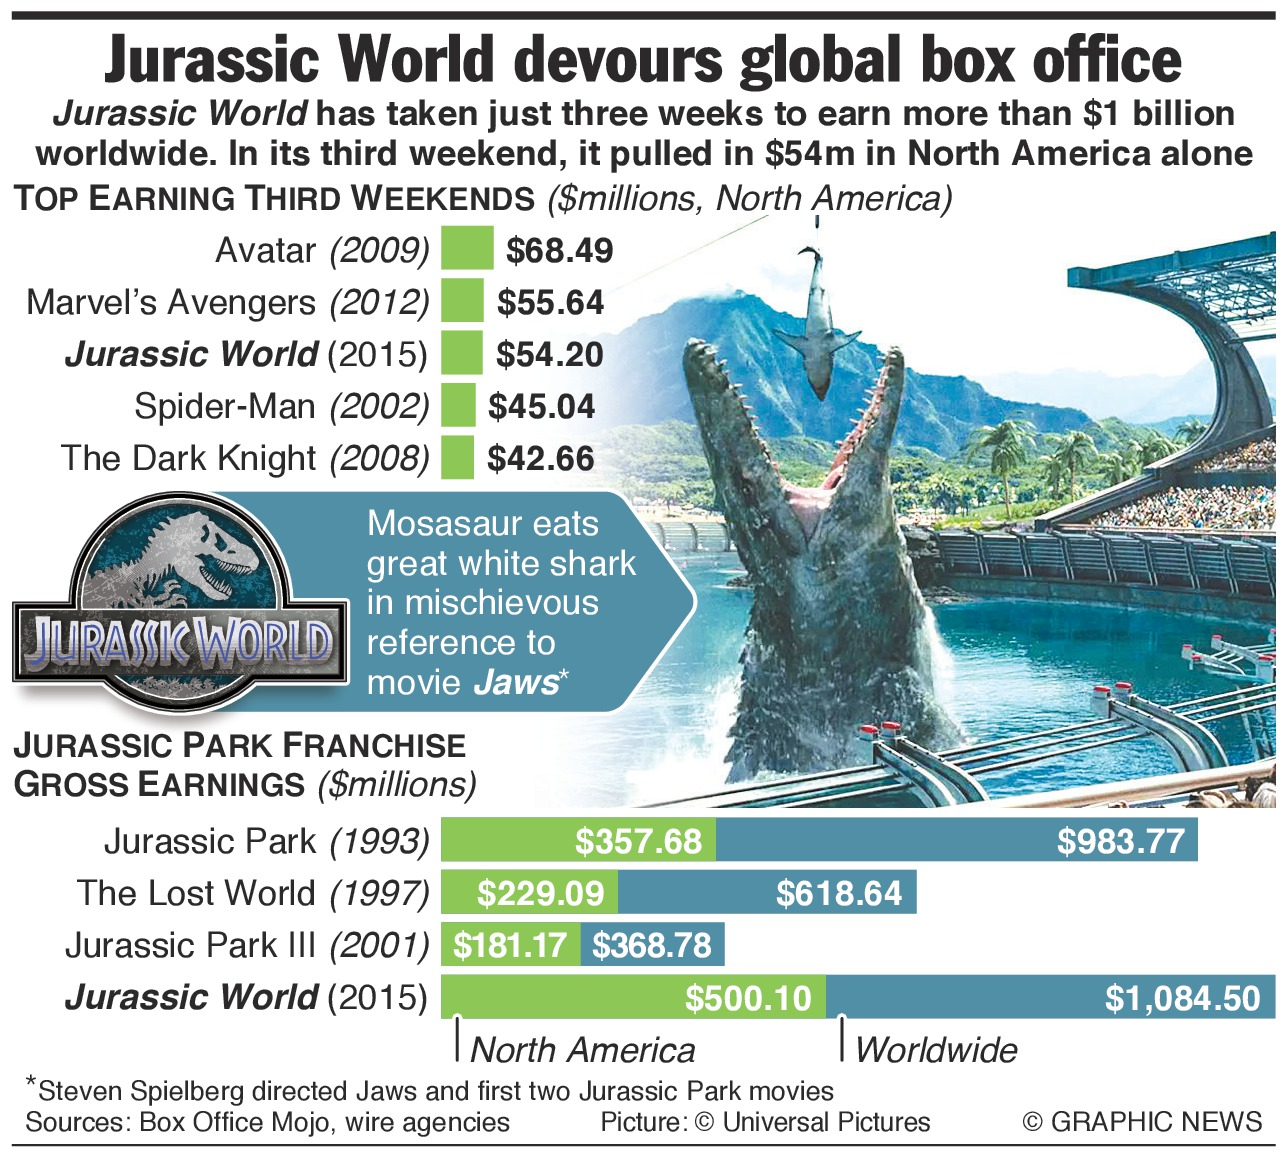 Box Office World Jurassicworld Phenomenally Successful The Indominus Rex Of The